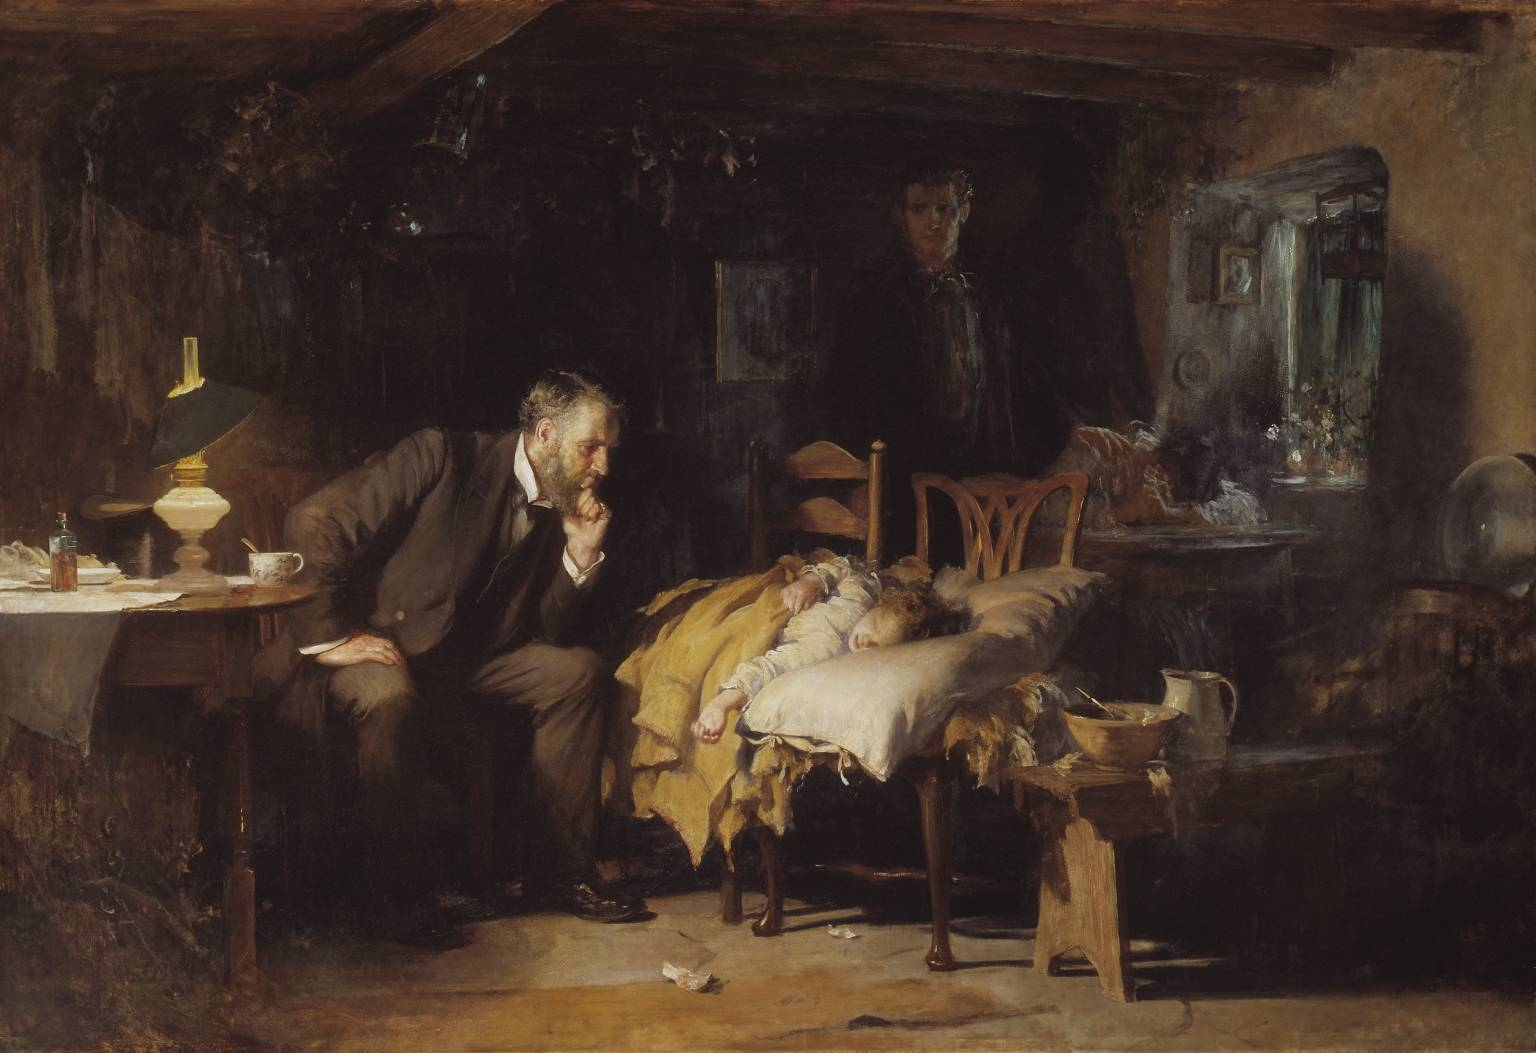 Luke Fildes' 1890 painting of The Doctor